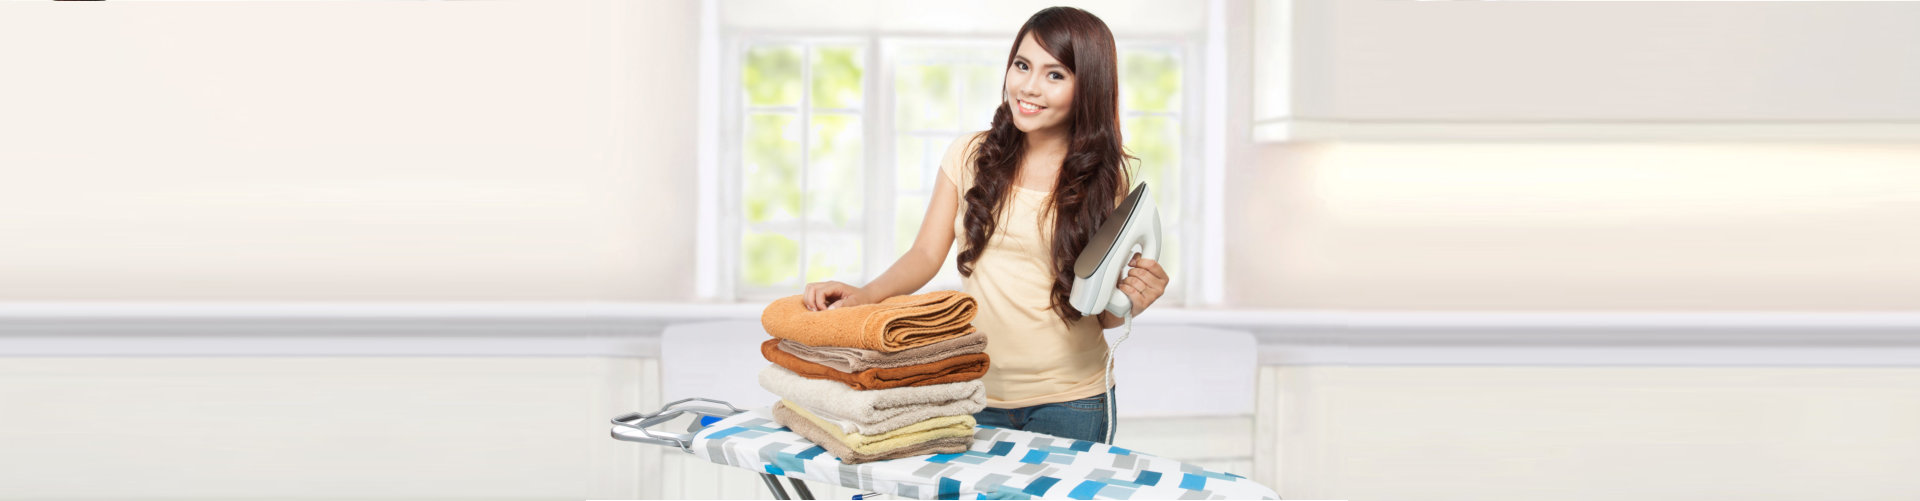 woman ironing cloths